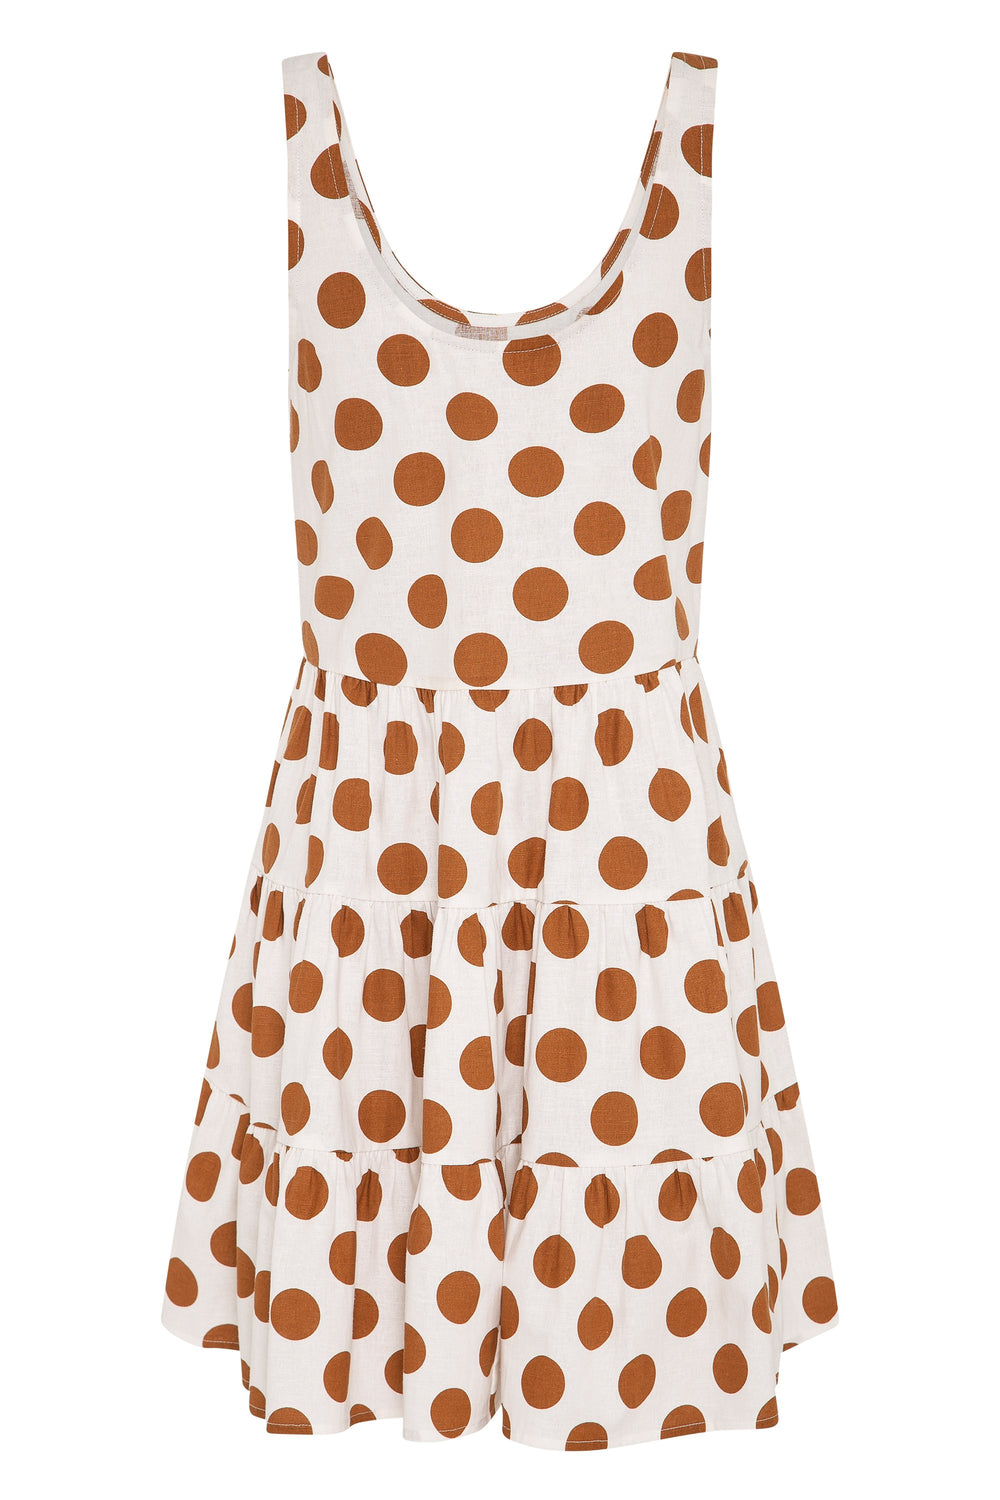 Winifred Dress In Tan Spot